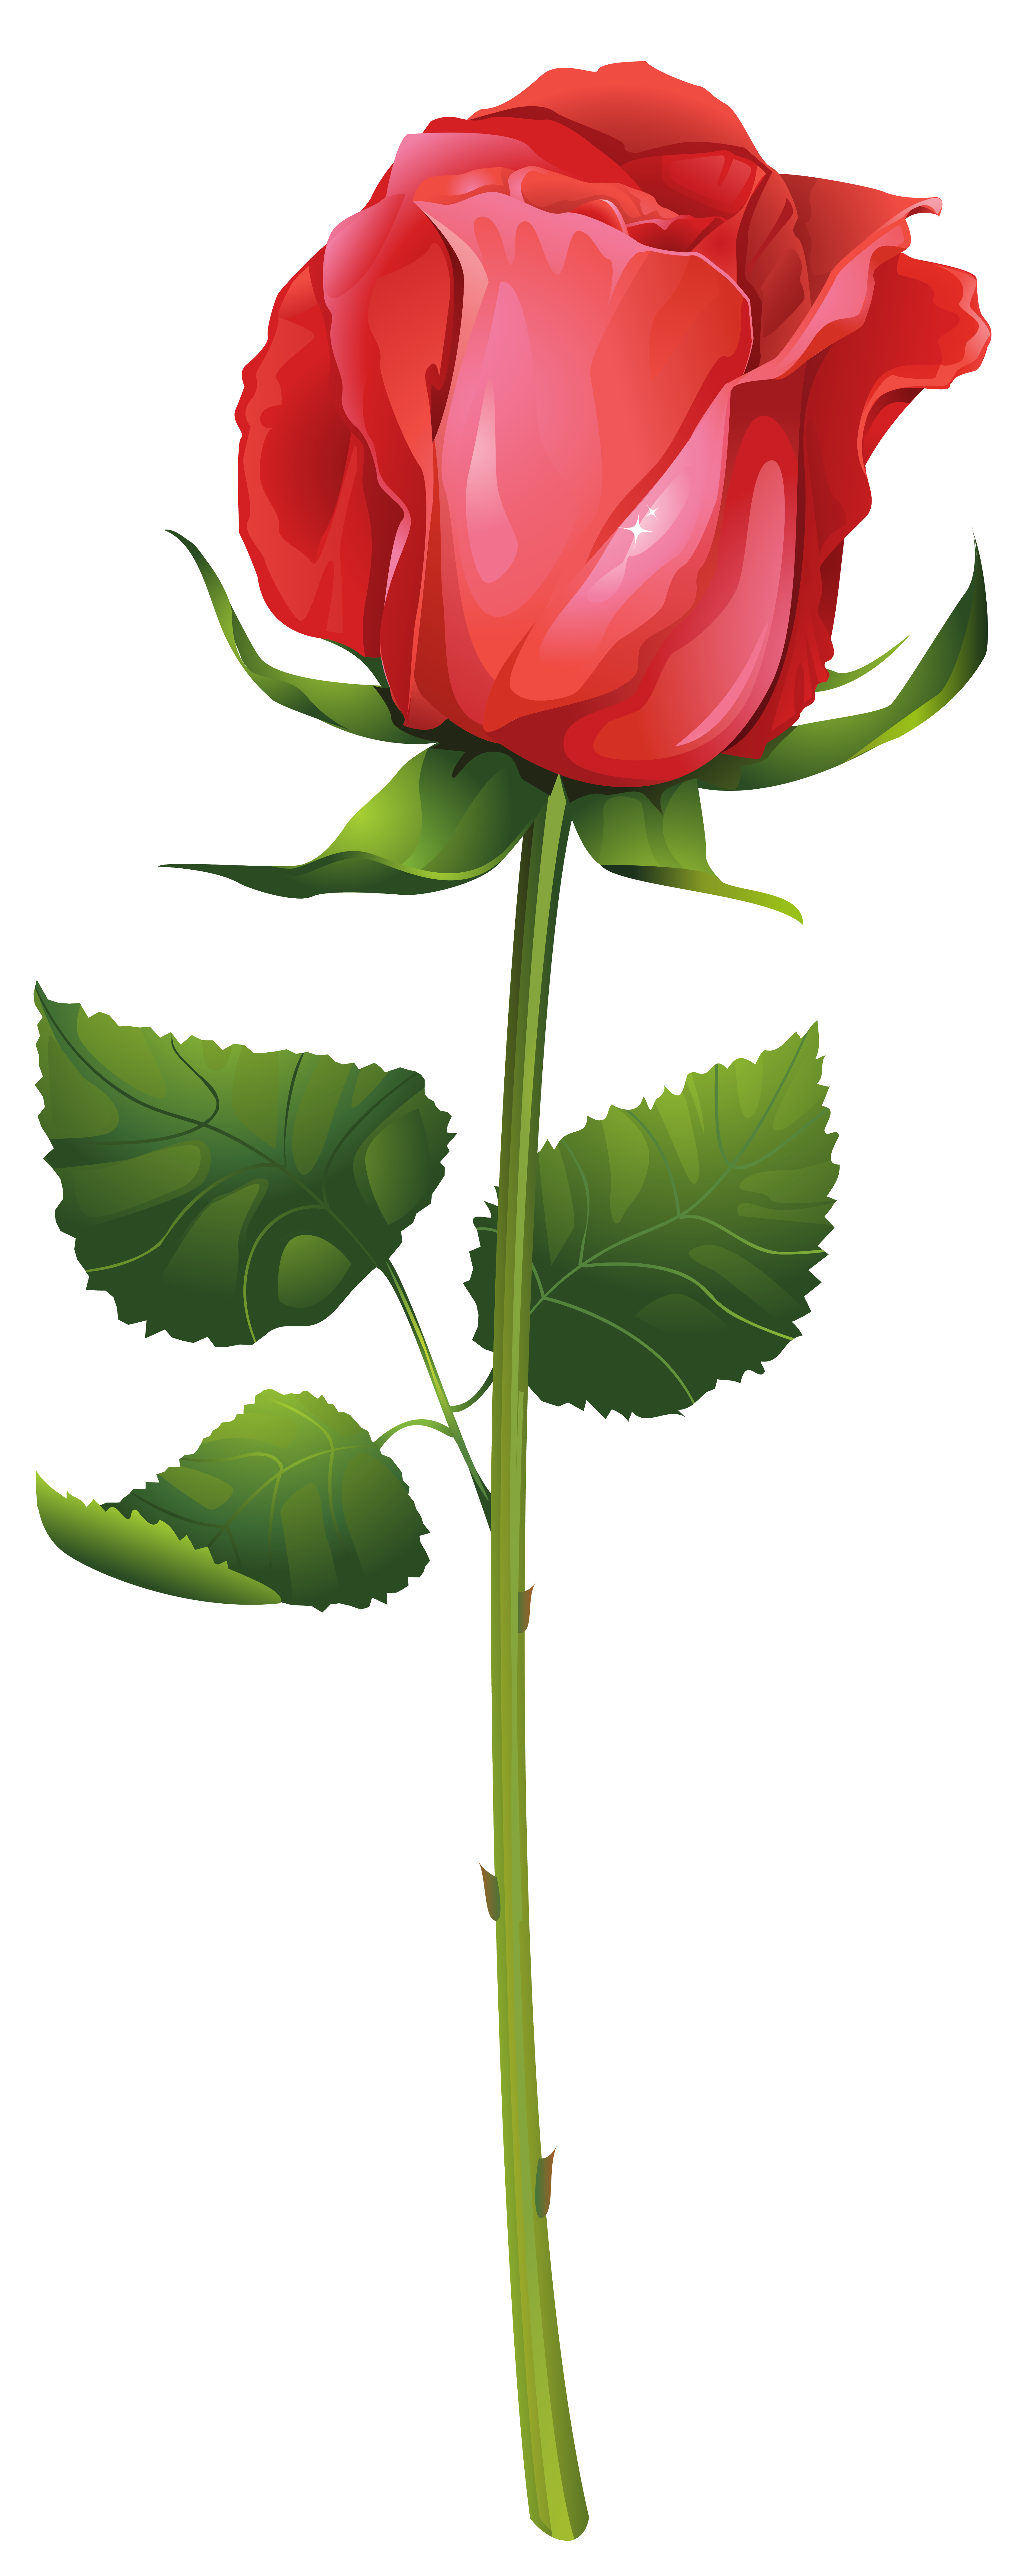 Rose with Stem PNG Clip Art Image.